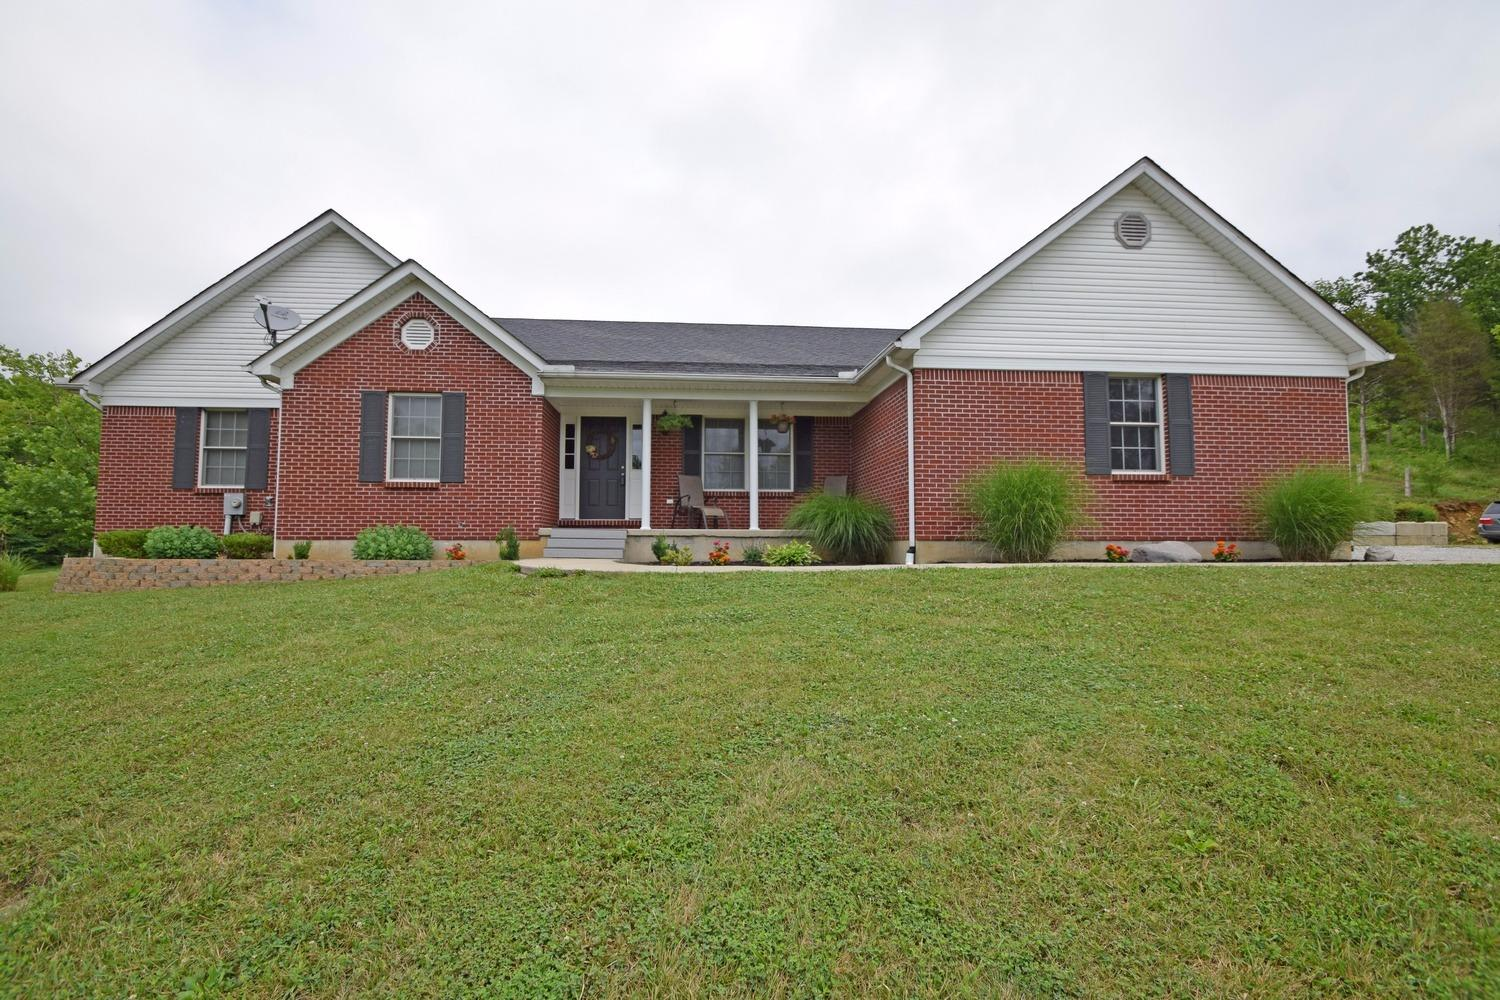 Photo 1 for 1923 Mullins Ln Demossville, KY 41033